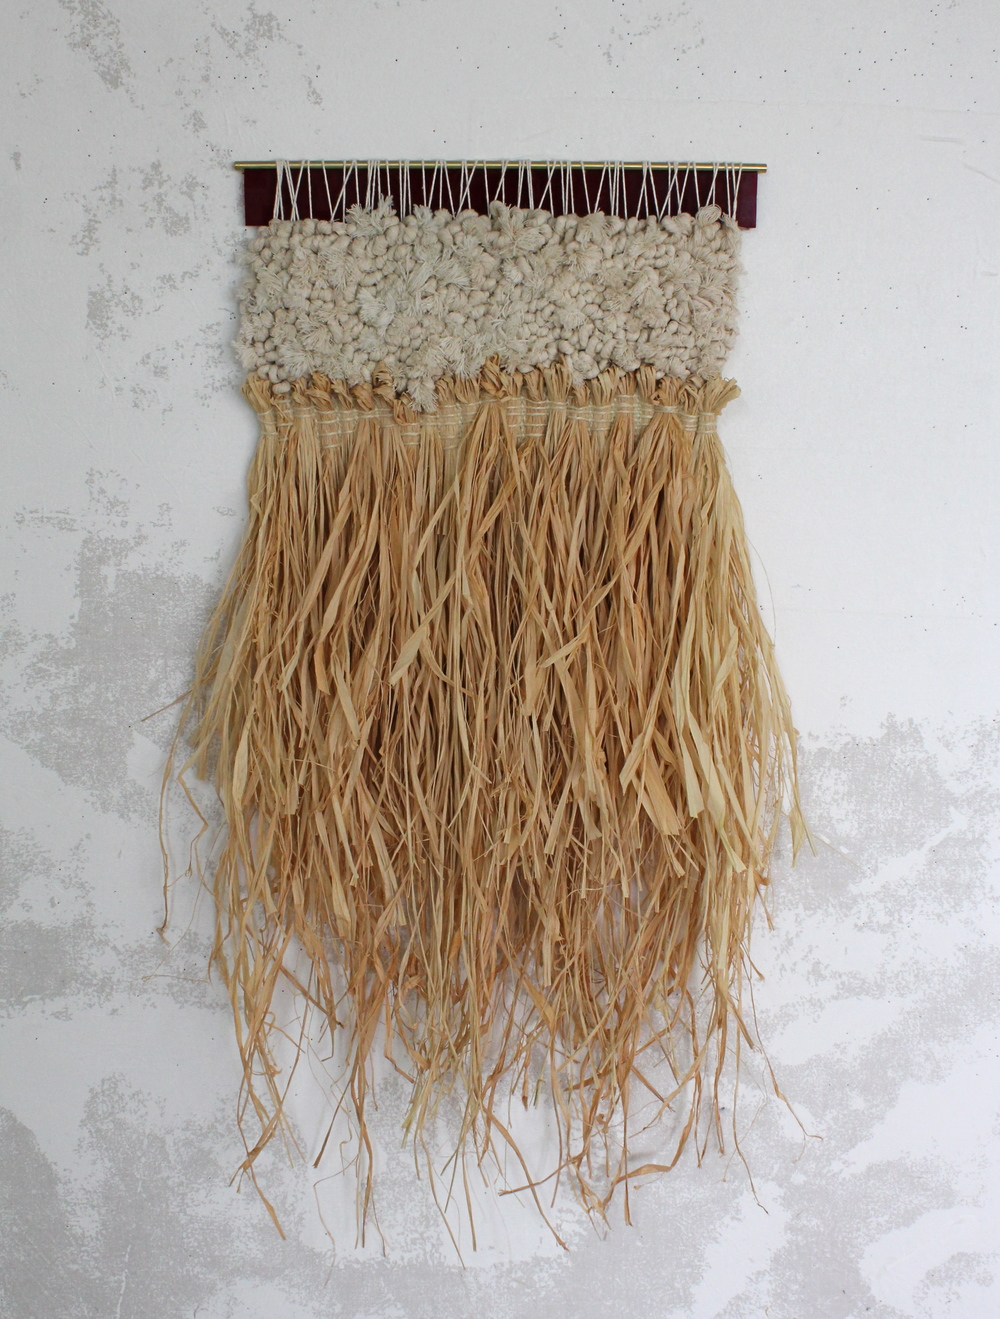 Chilao Weaving